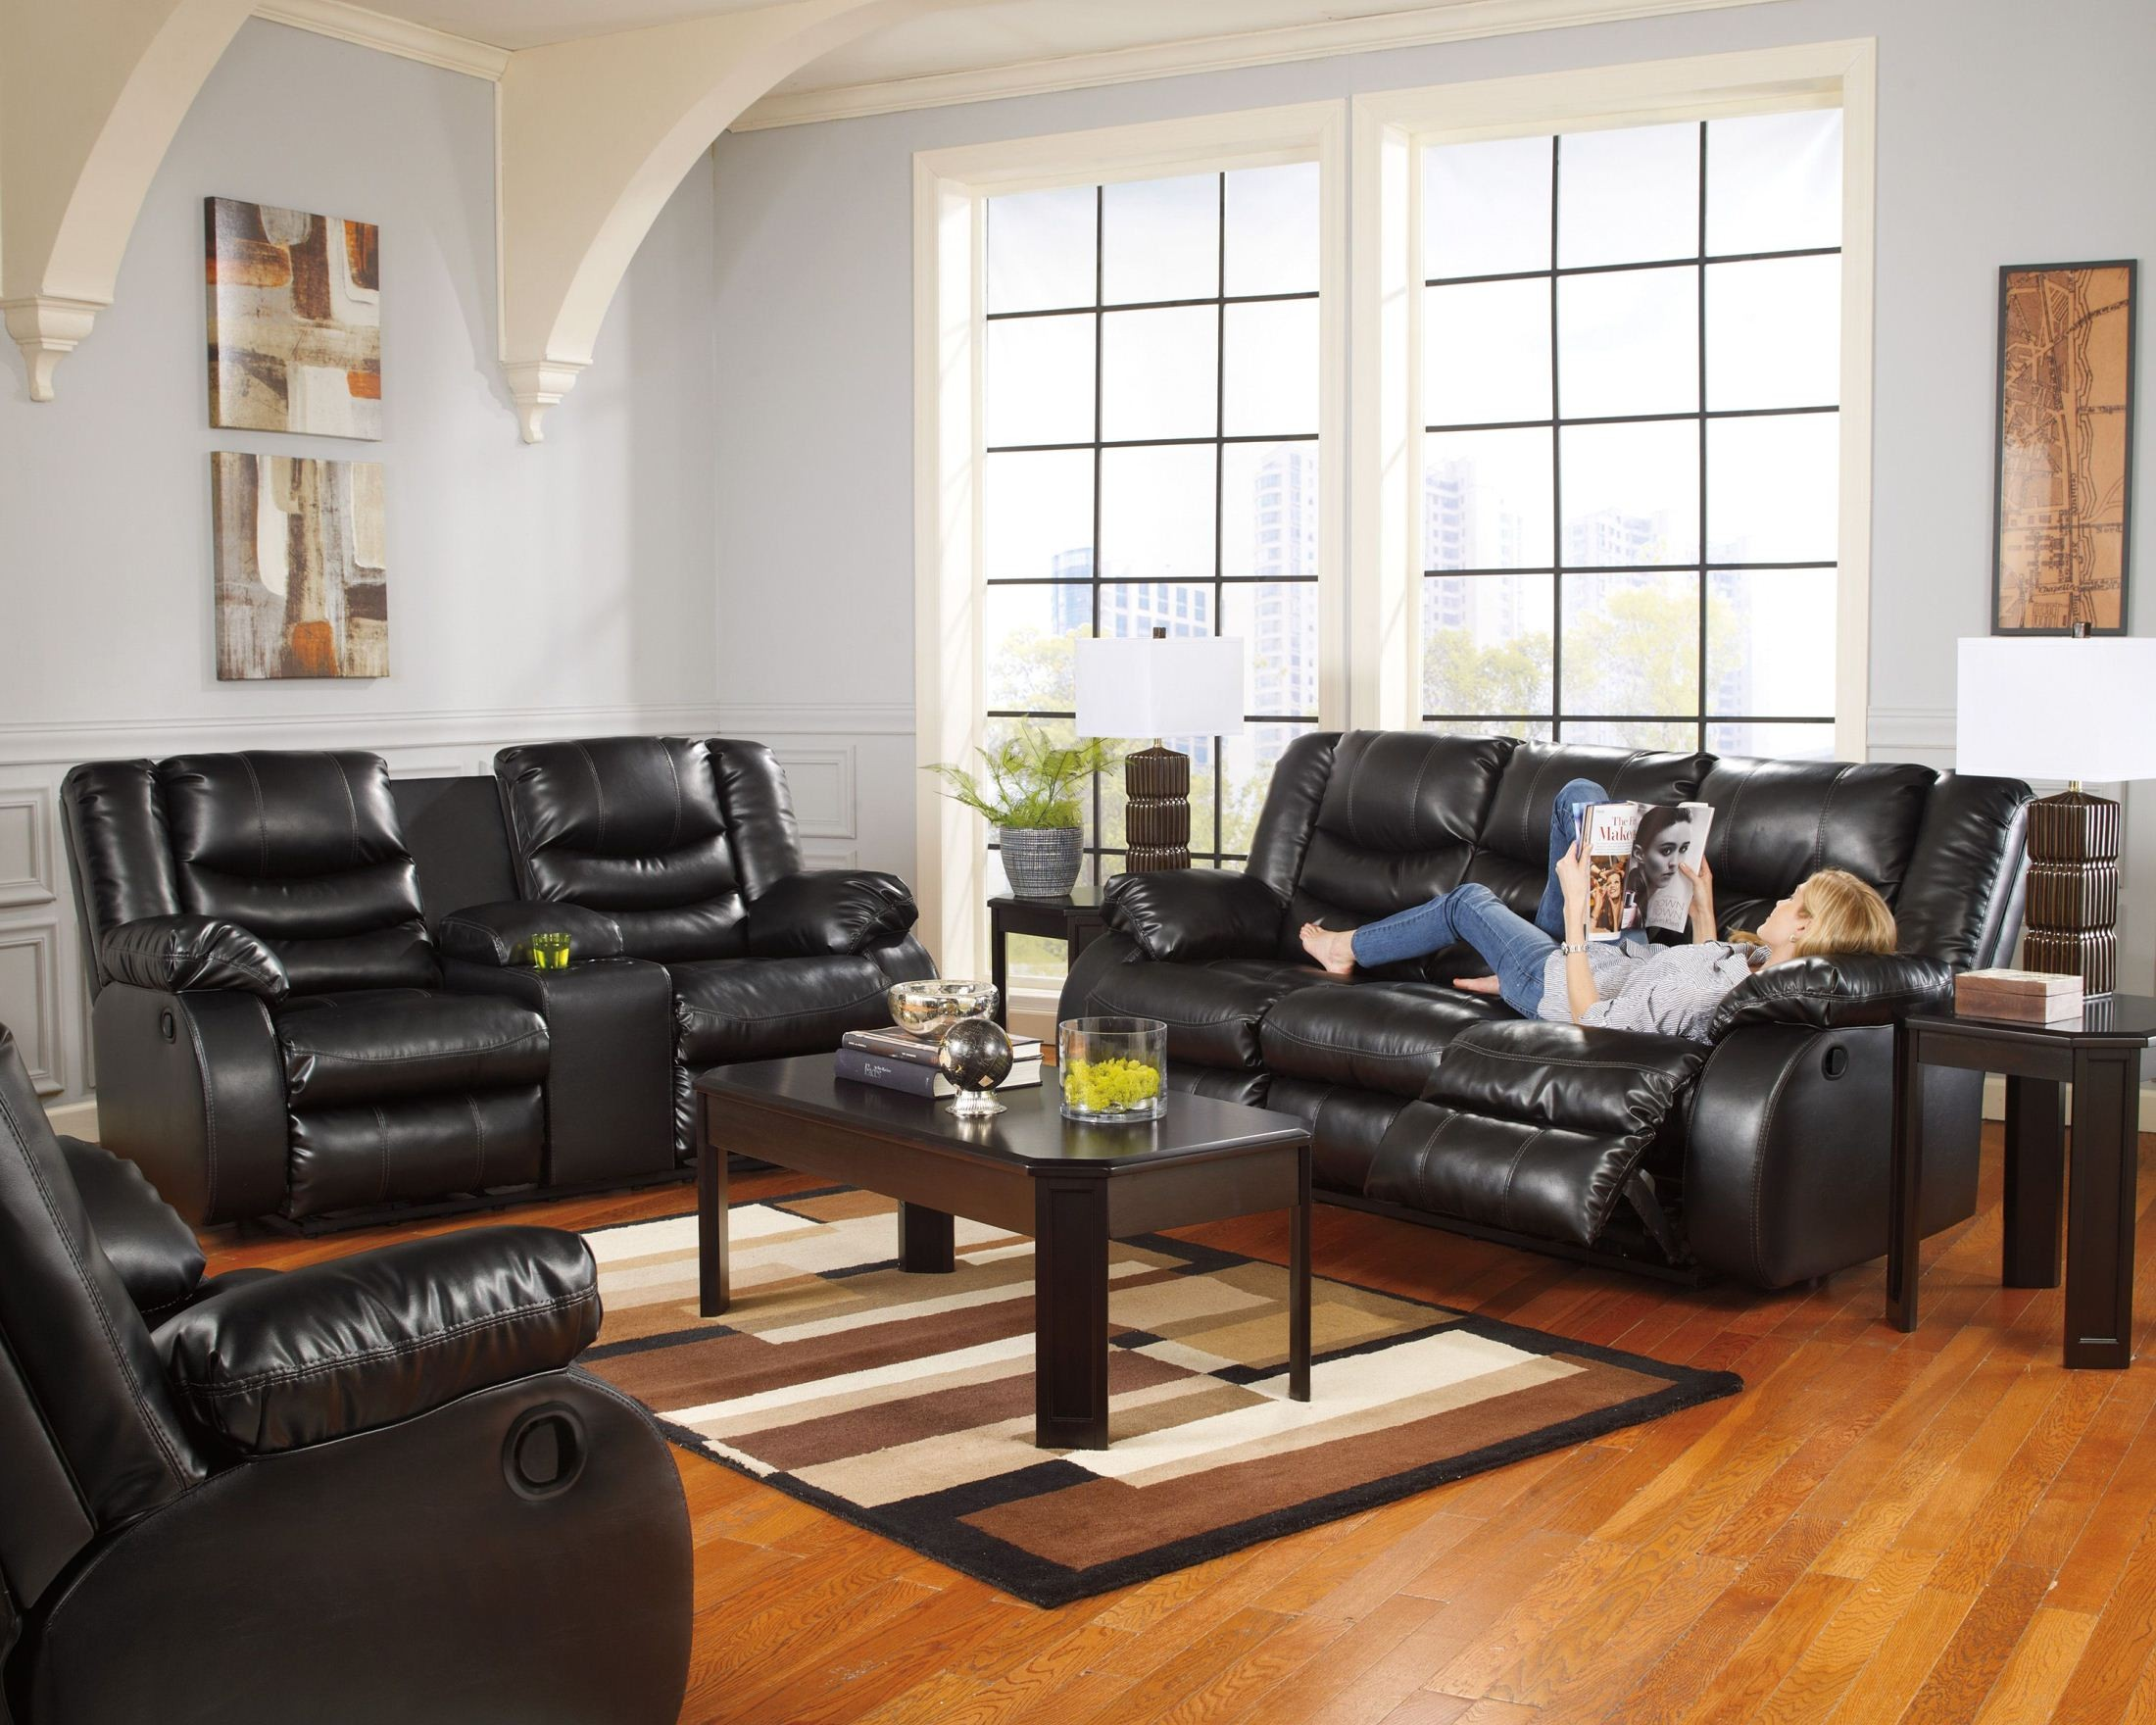 linebacker durablend black reclining living room set from ashley